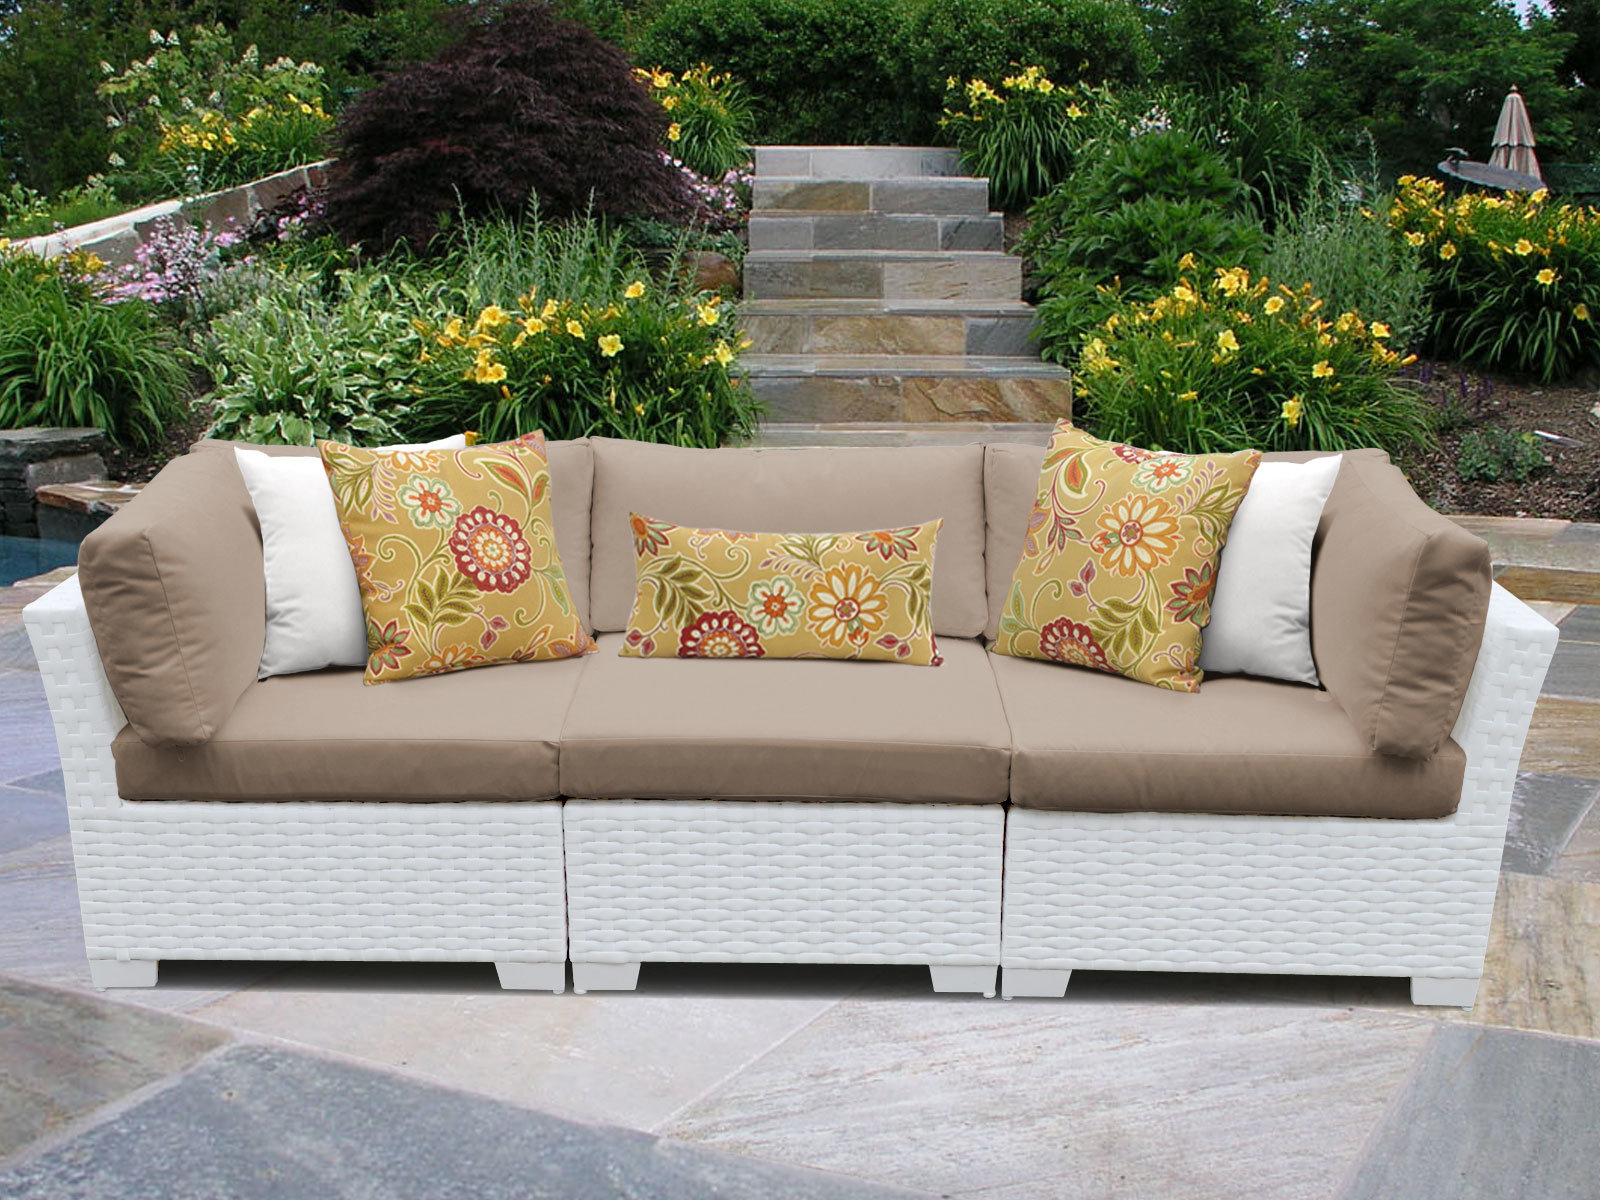 Monaco Patio Sofa With Cushions Intended For Most Recent Newbury Patio Sofas With Cushions (View 9 of 20)